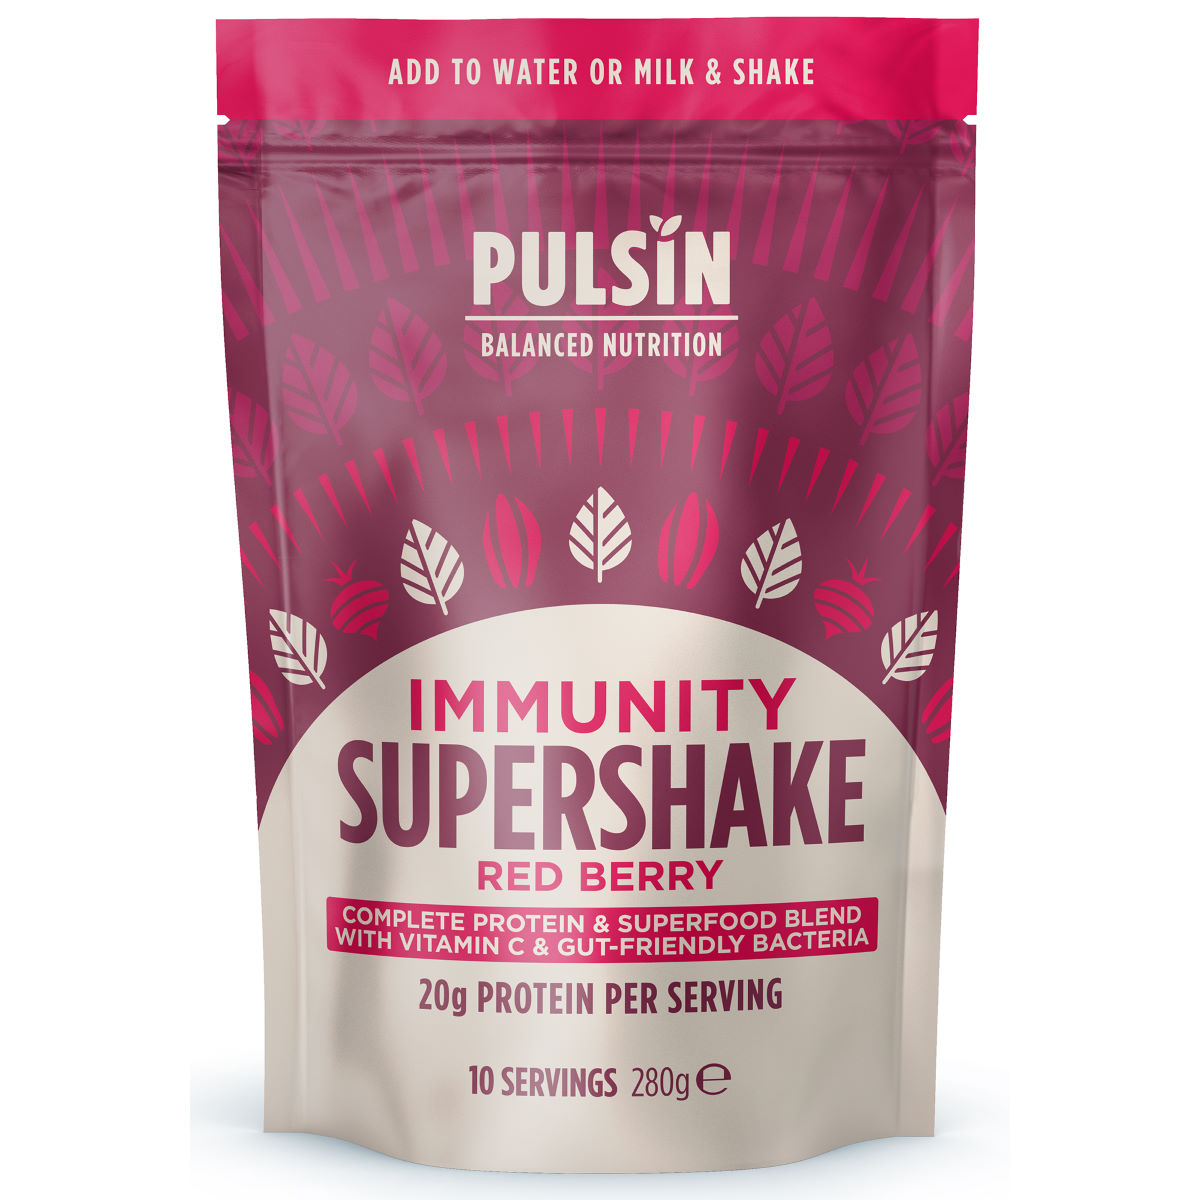 Pulsin Supershake Protein Powder (300g) - 8 X 28g Immunity Red Berry